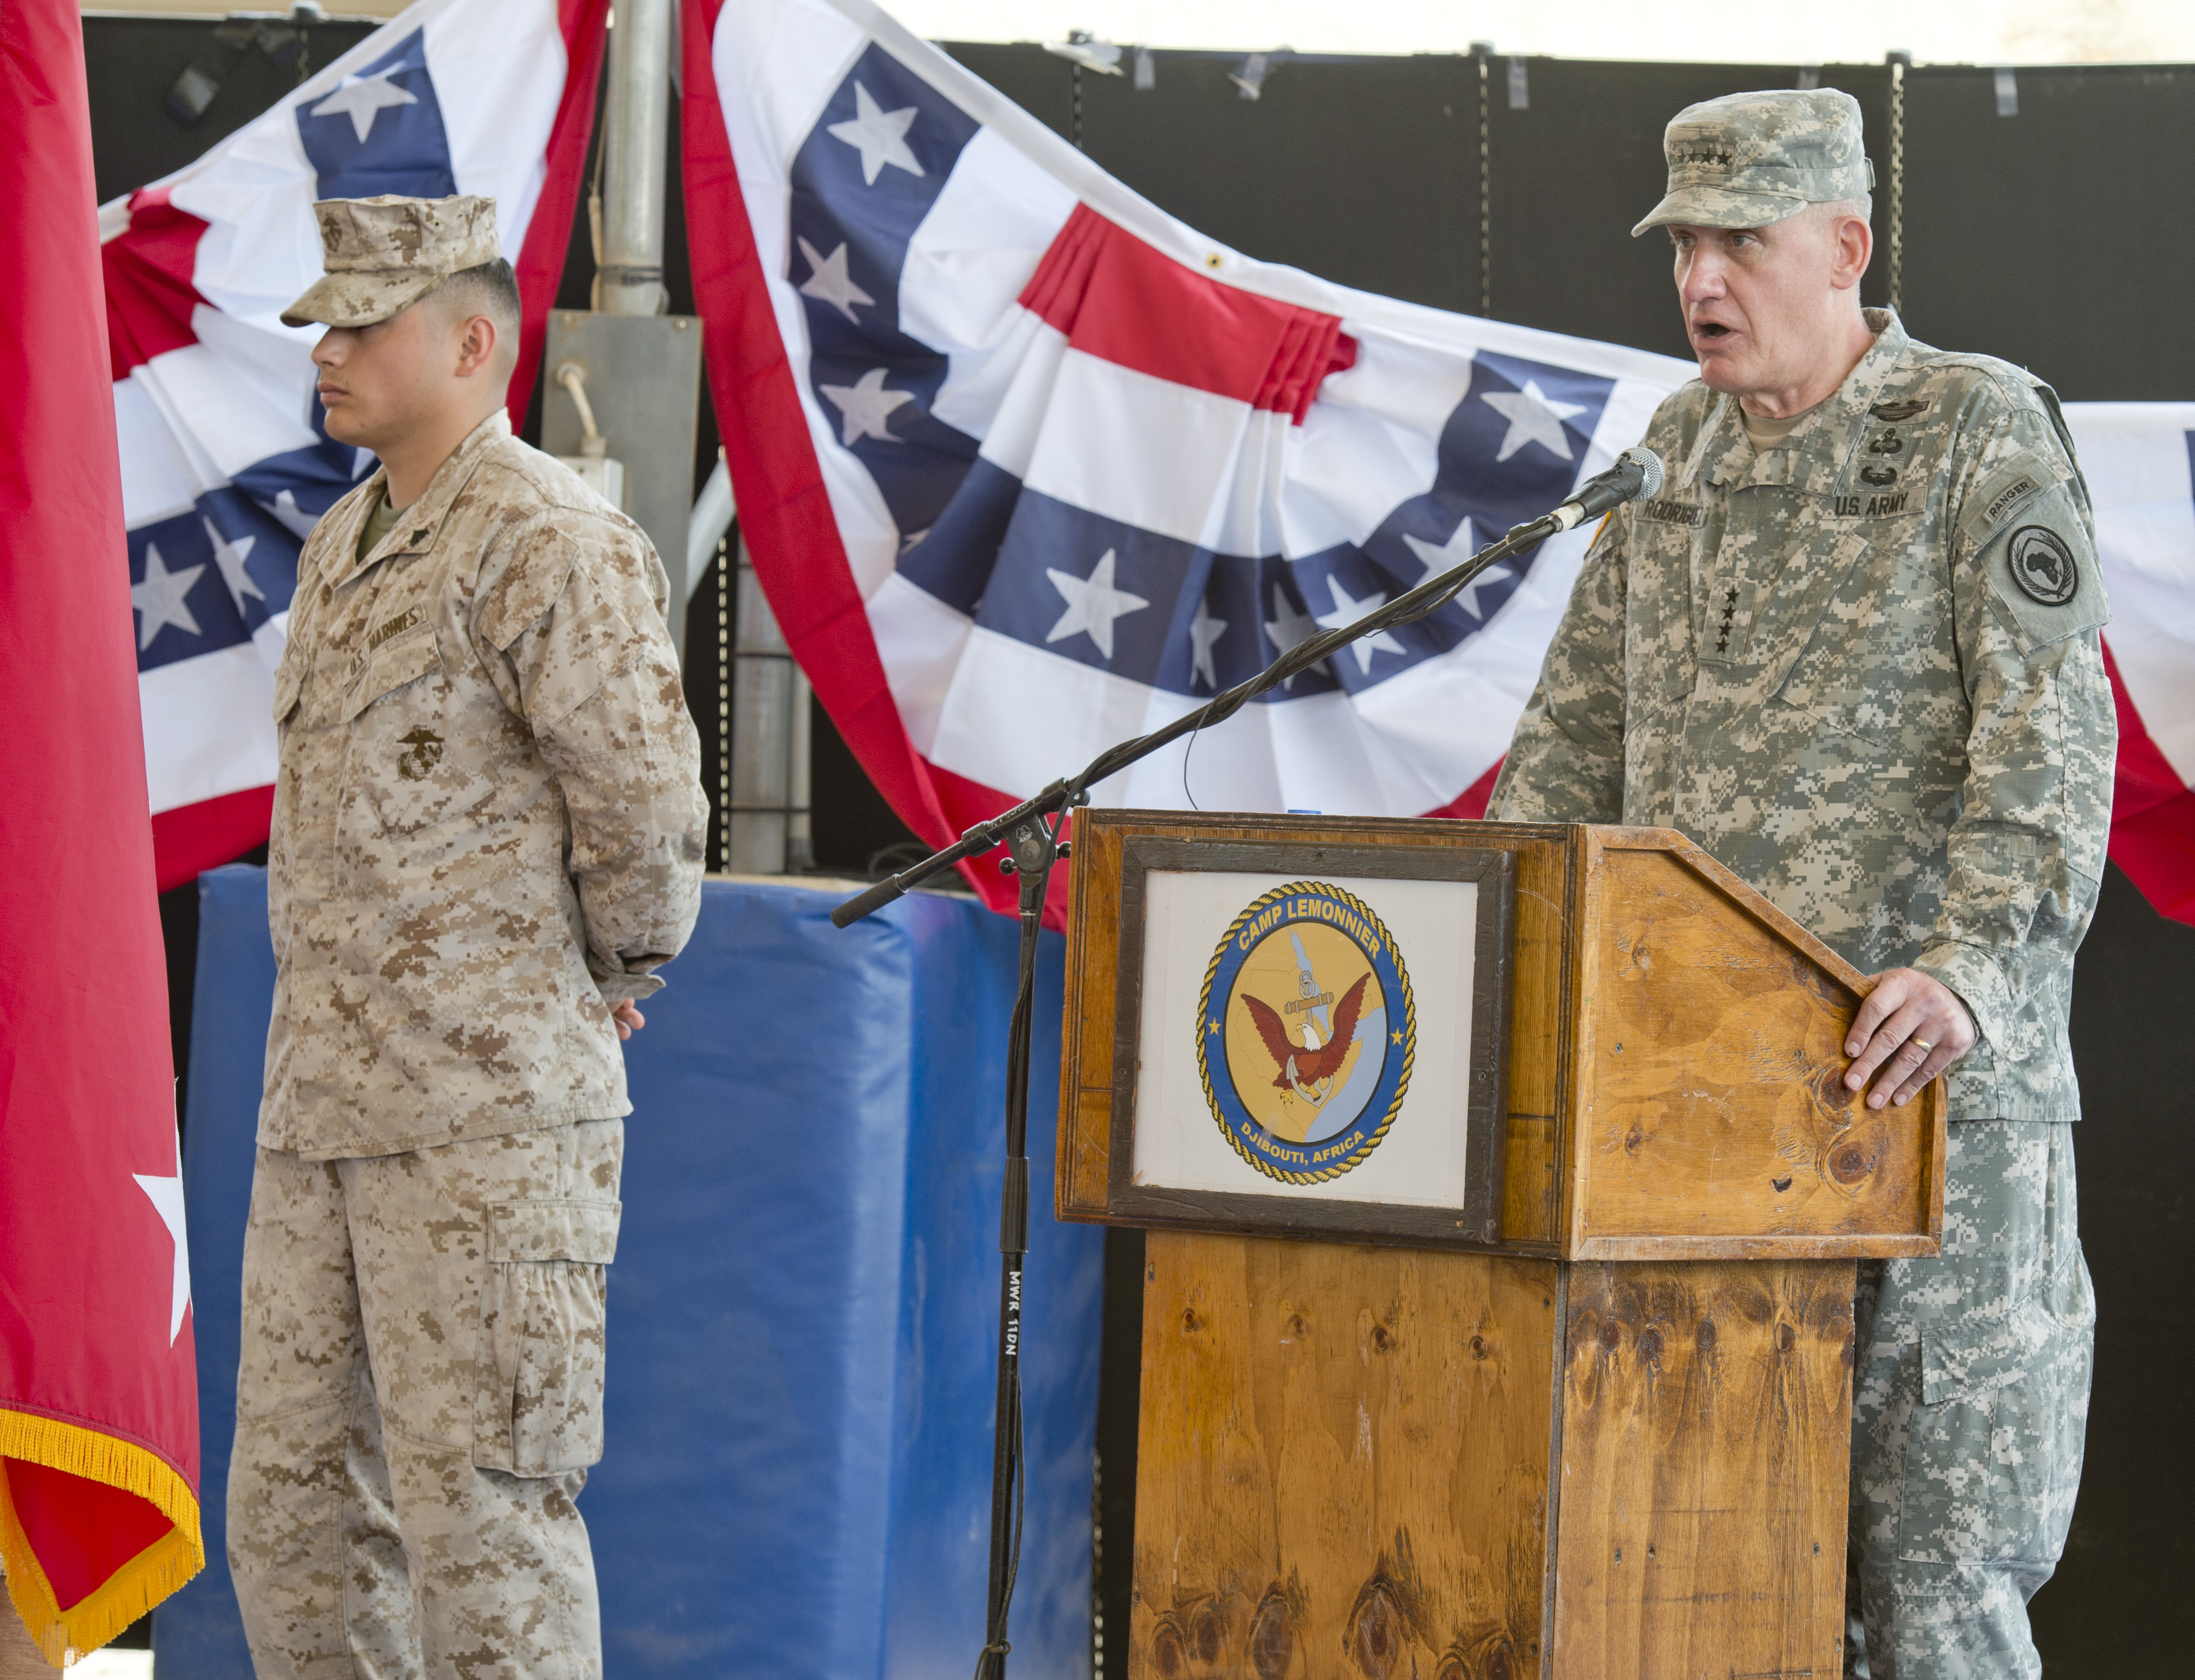 U.S. Army Gen. David Rodriguez, U.S. Africa Command commander, delivers remarks during the Combined Joint Task Force-Horn of Africa change of command ceremony at Camp Lemonnier, Djibouti, April 14, 2015. During the ceremony, U.S. Army Maj. Gen. Mark Stammer assumed command of CJTF-HOA from Maj. Gen. Wayne W. Grigsby, Jr. Additionally, Stammer obtained the rank of Major General during a frocking ceremony on April 13, before taking command of CJTF-HOA from Maj. Gen. Wayne W. Grigsby, Jr.  (U.S. Air Force photo by Tech. Sgt. Ian Dean)